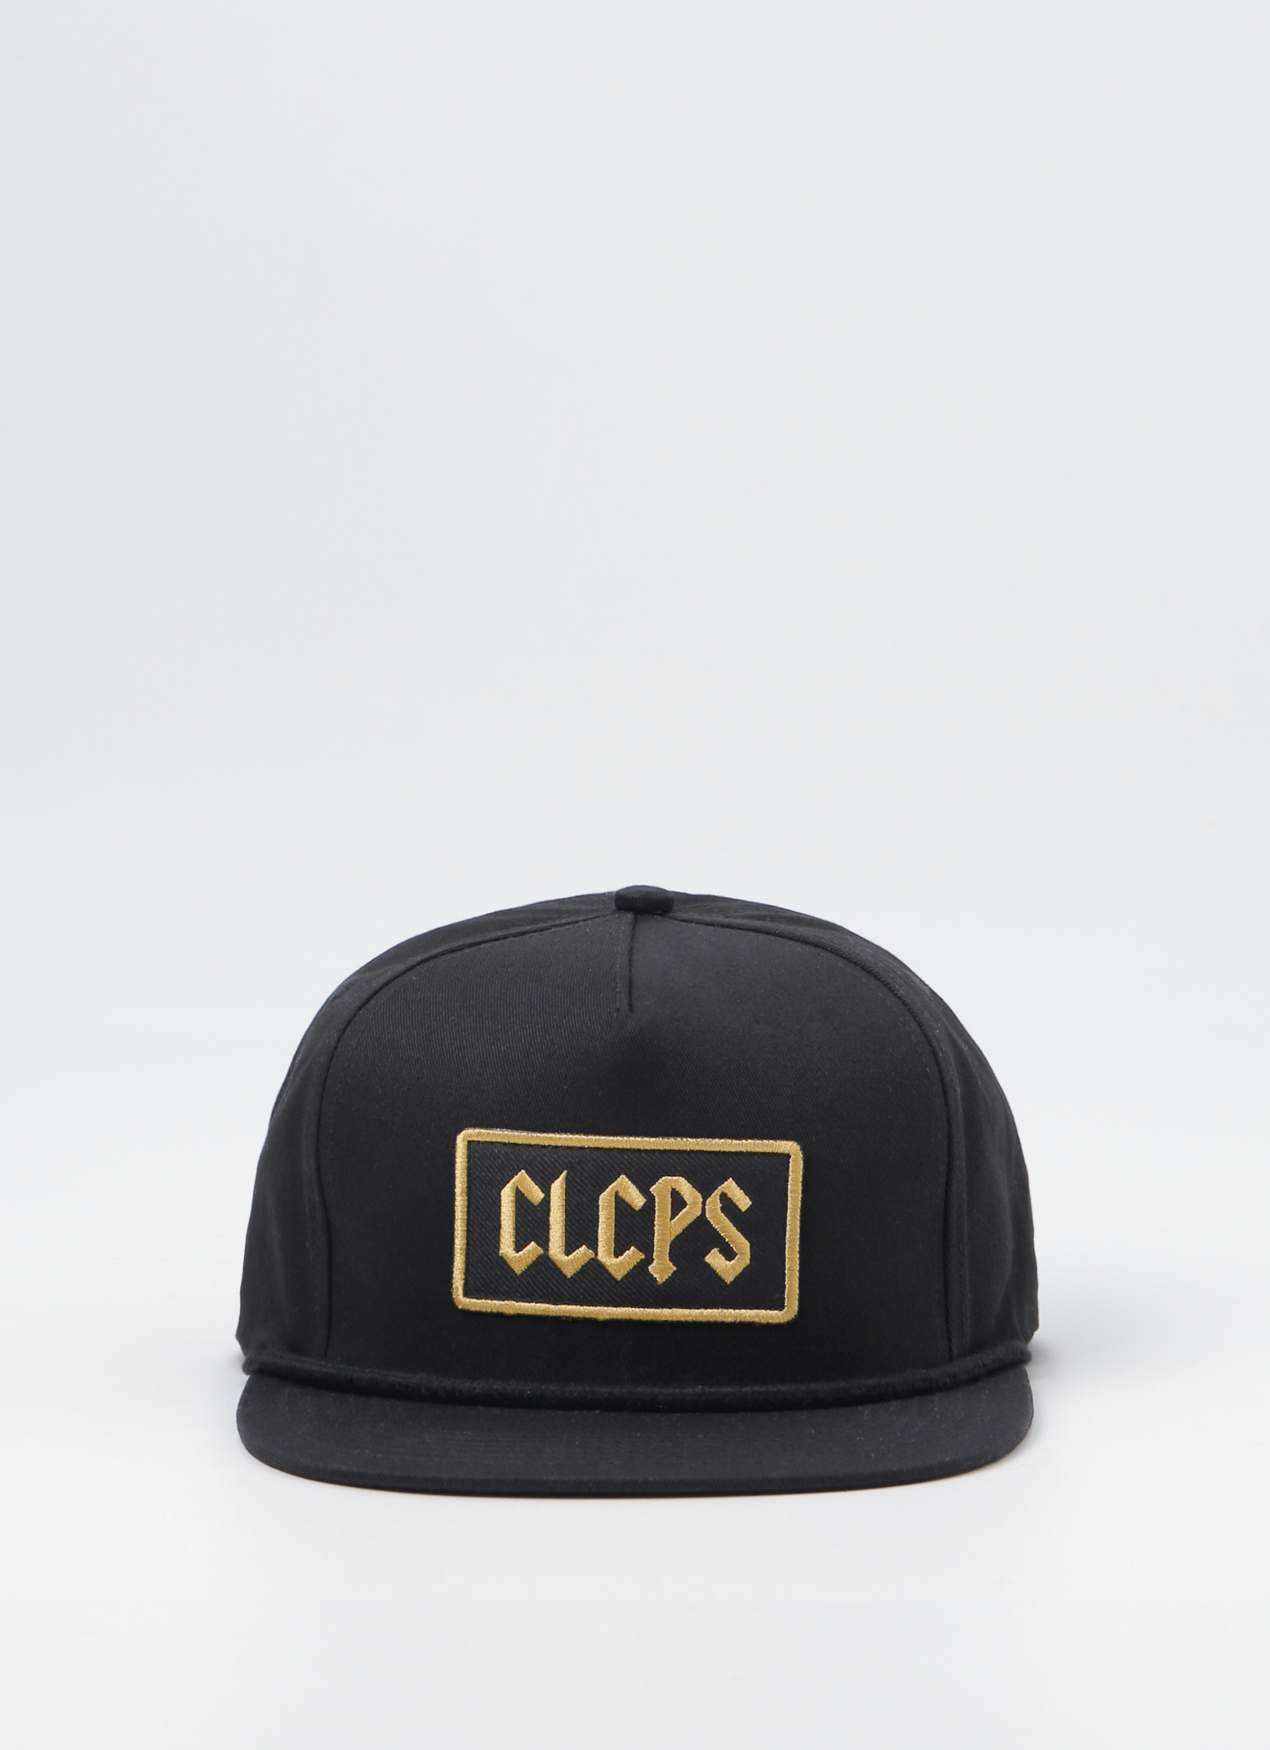 212cd015523 Buy Original Cool Caps Black CLCPS Patch Snapback at Indonesia ...